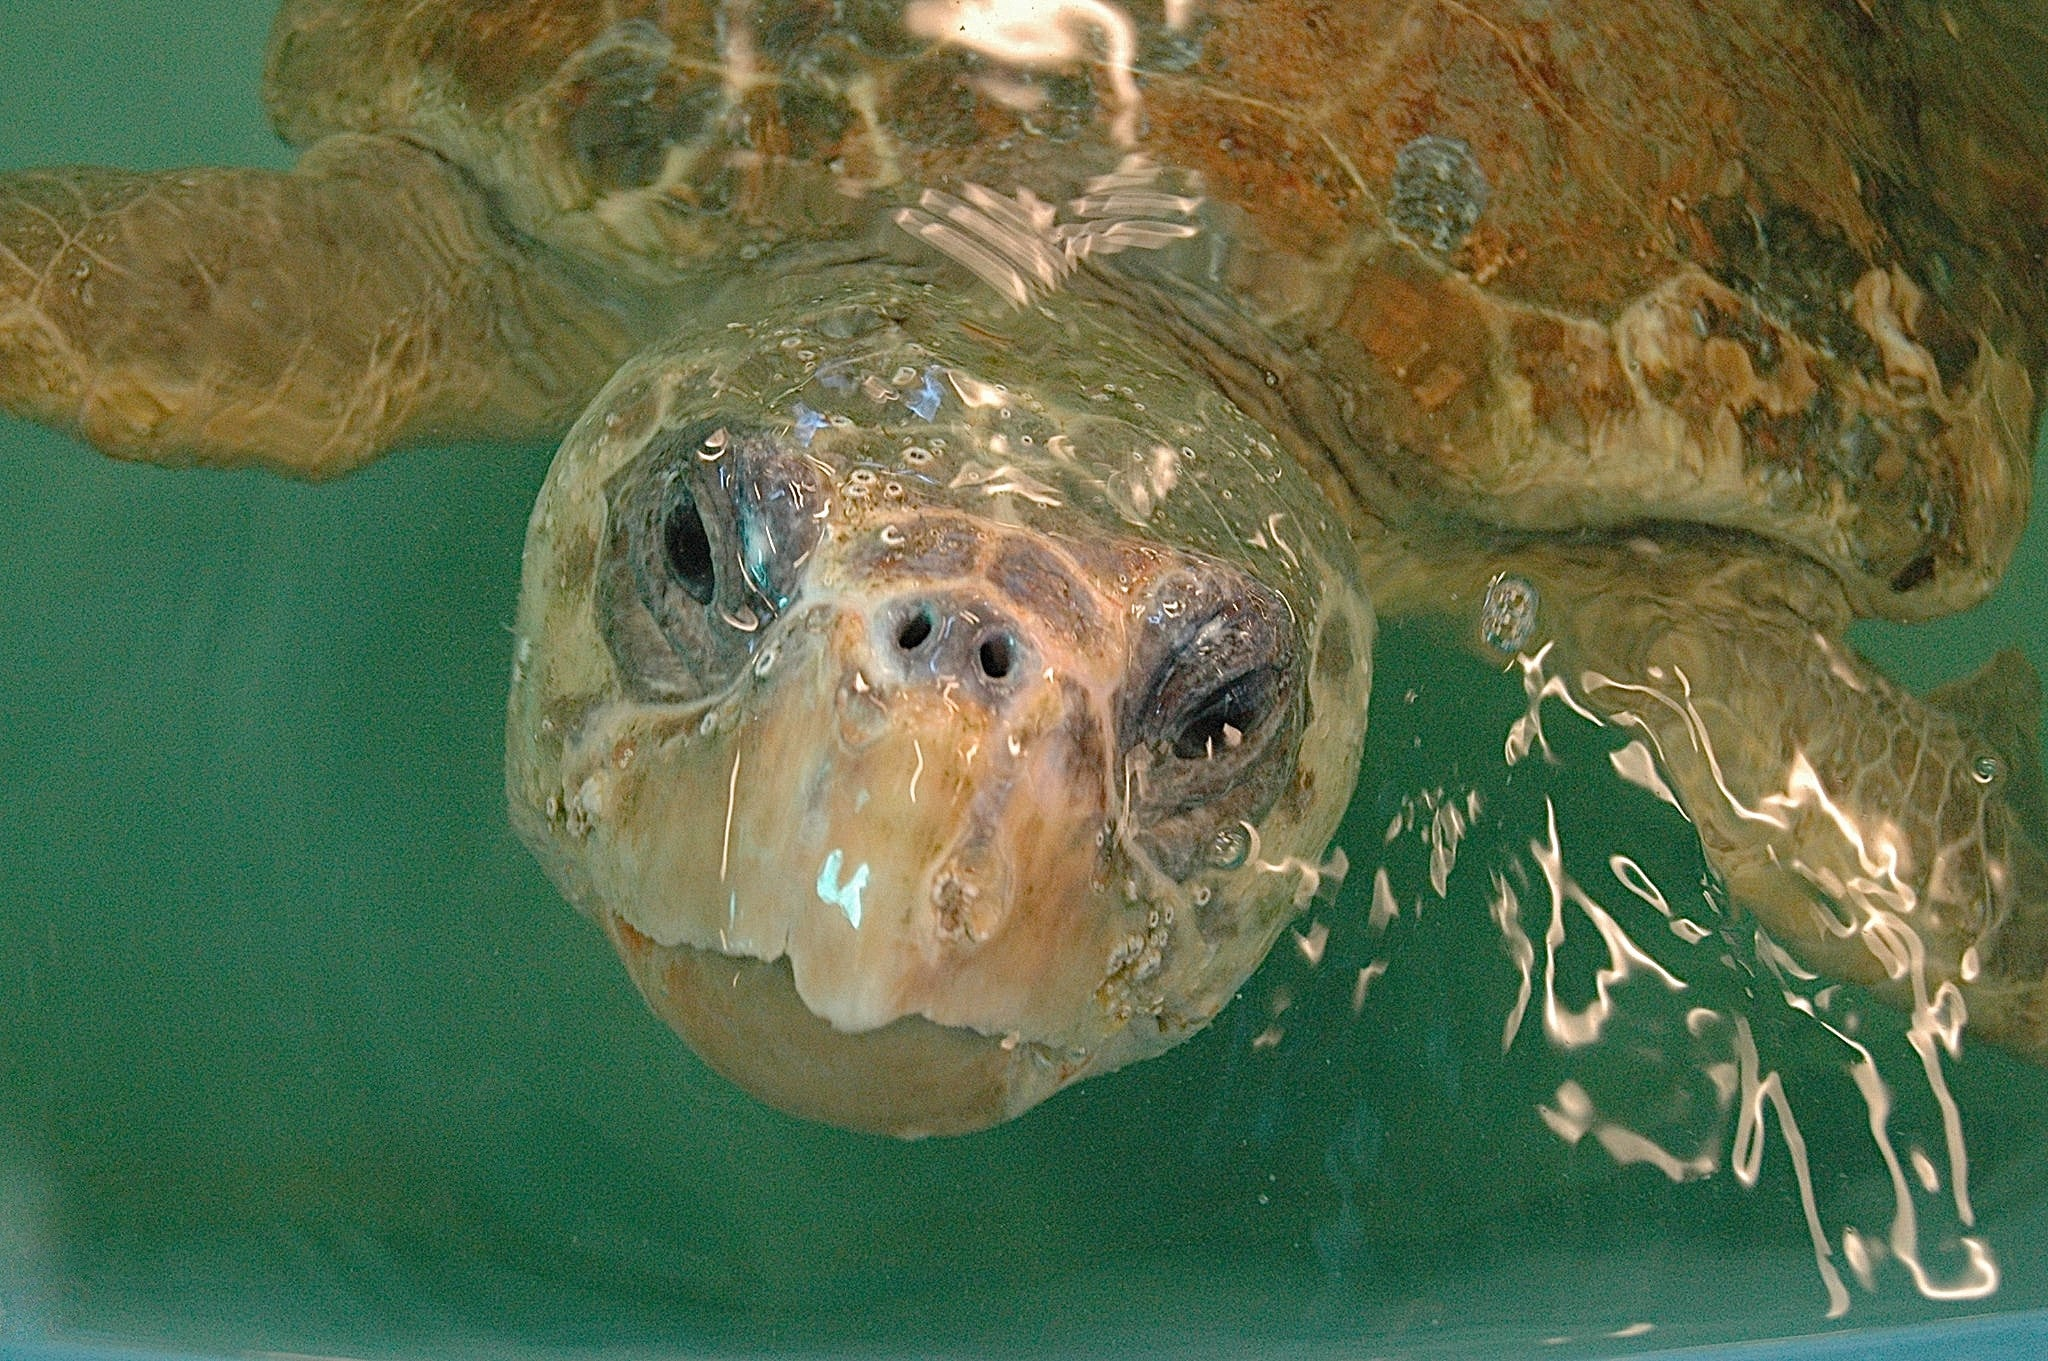 Georgia Sea Turtle Center Membership Program